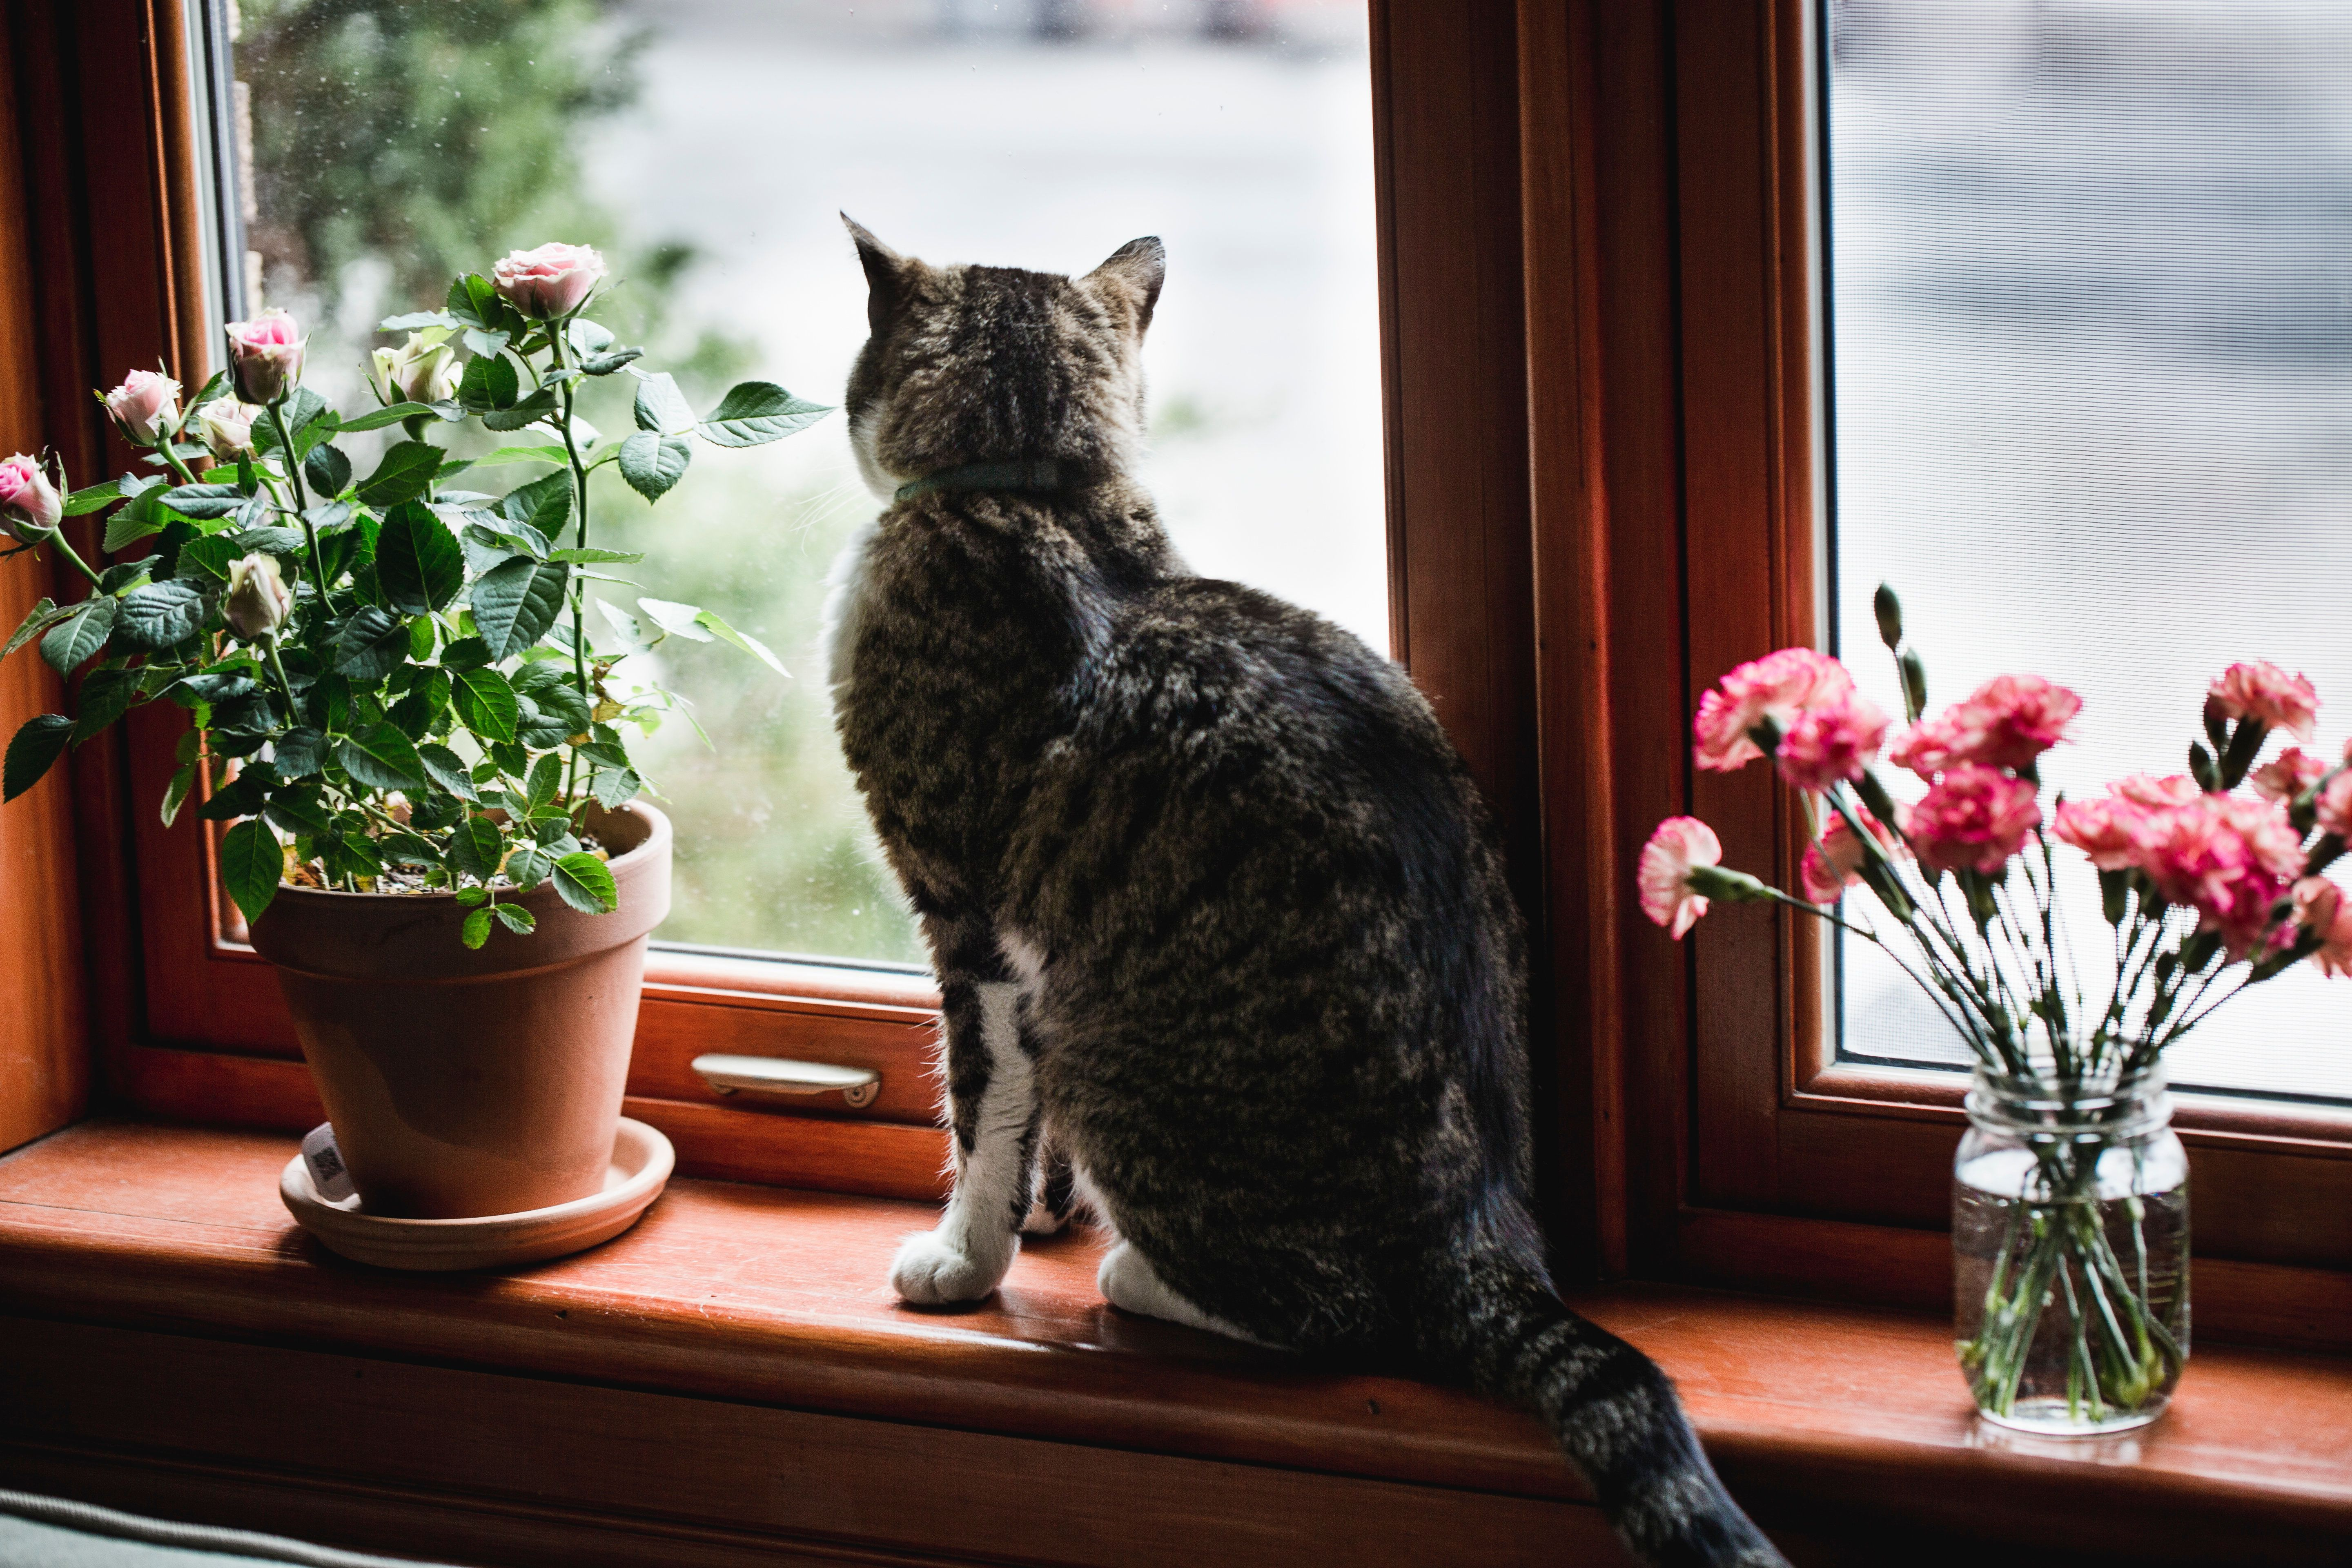 Don't Buy Mum Lilies If She Has A Cat, Warns